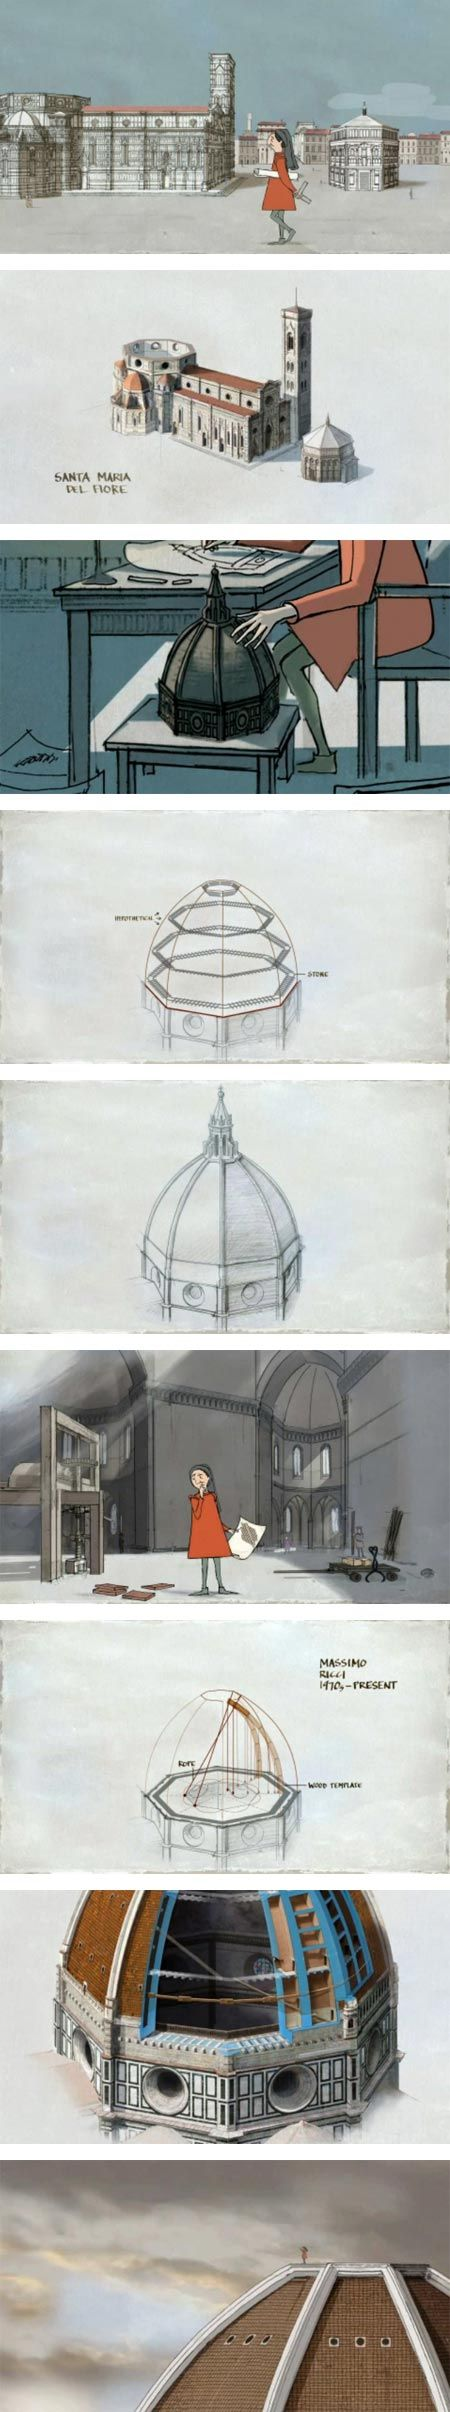 """""""Il Duomo: Daring Design is a short animation by Fernando Baptista. It serves as a brief introduction to the marvel of architecture, engineering and design that is Filippo Brunelleschi's dome for the cathedral of Santa Maria del Fiore in Florence."""""""